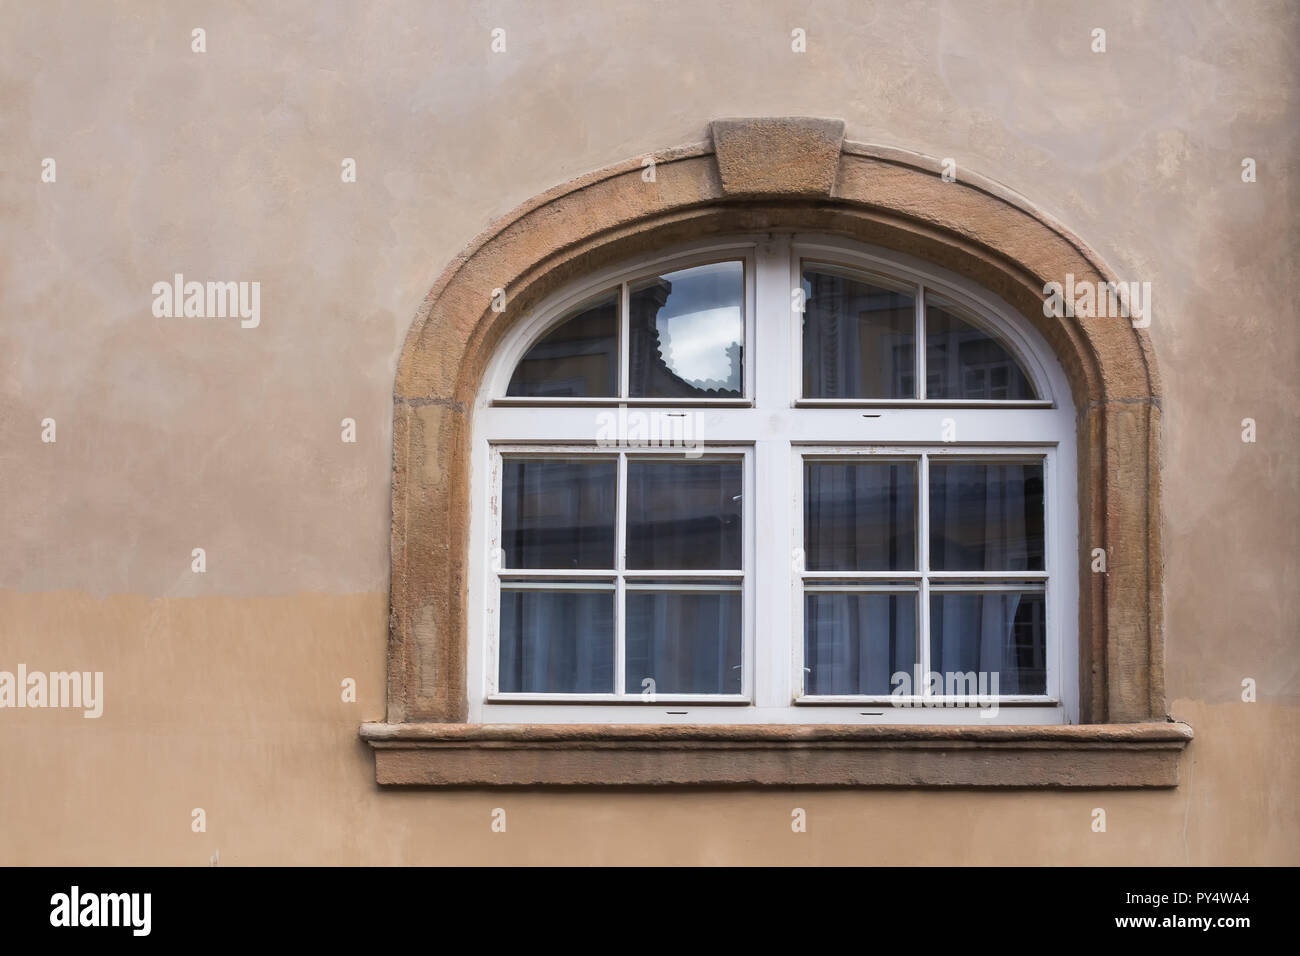 Wall of a house in tones of brown color with a window with stone frame with an arch. White curtains and reflection on the glass. Old city of Prague, C - Stock Image